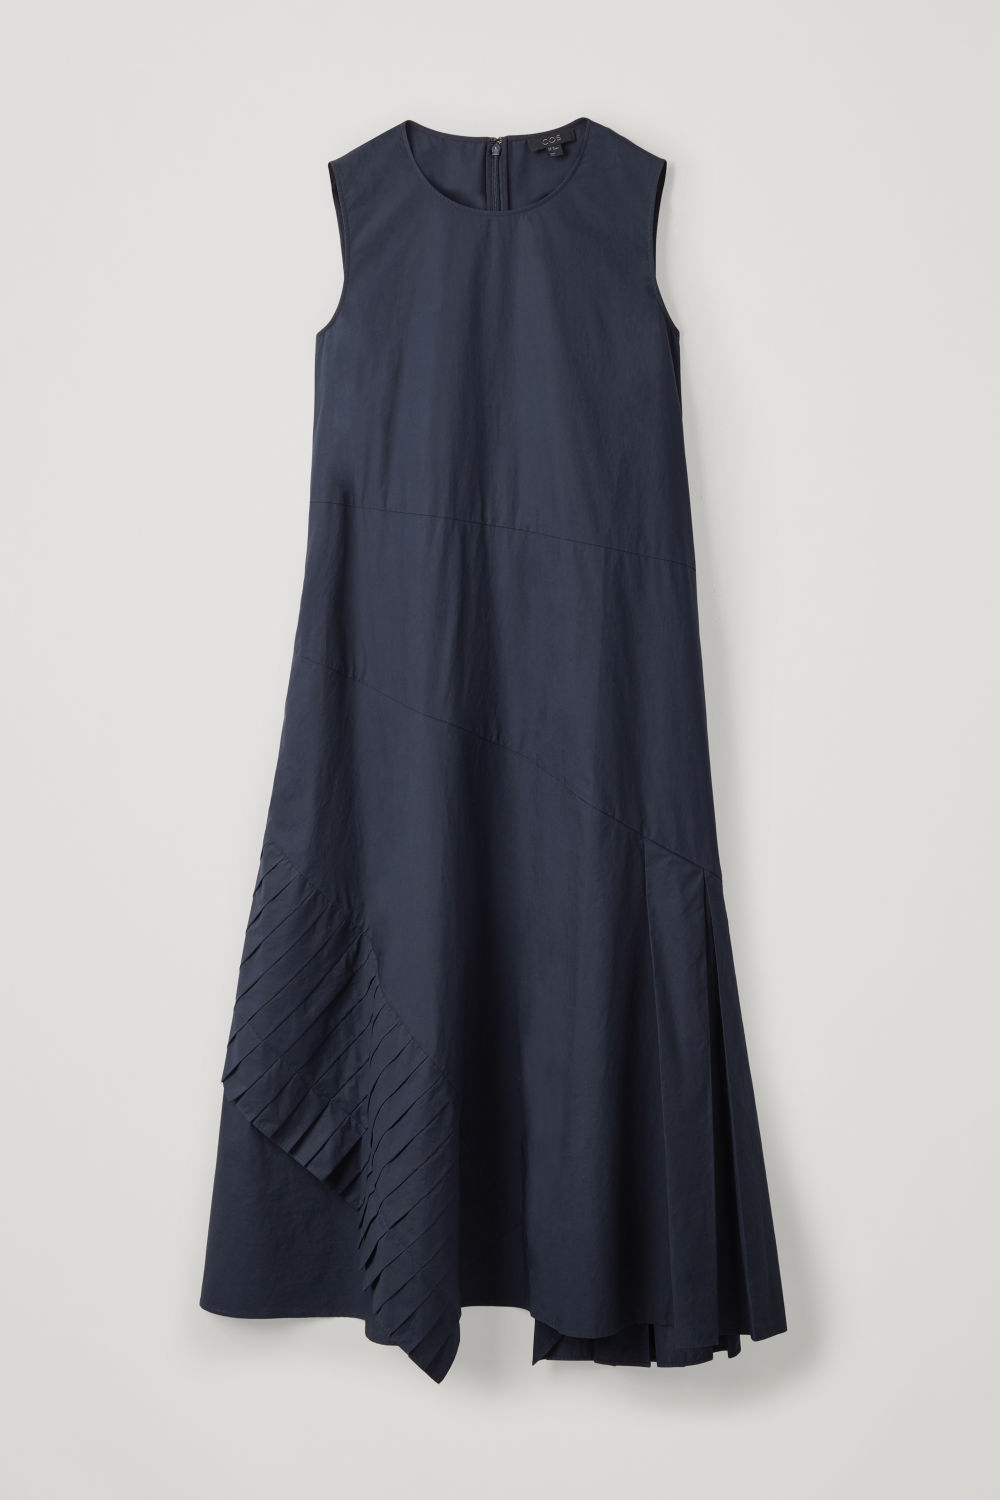 40f8fa8b79 ... A-LINE DRESS WITH PLEATED DRAPE